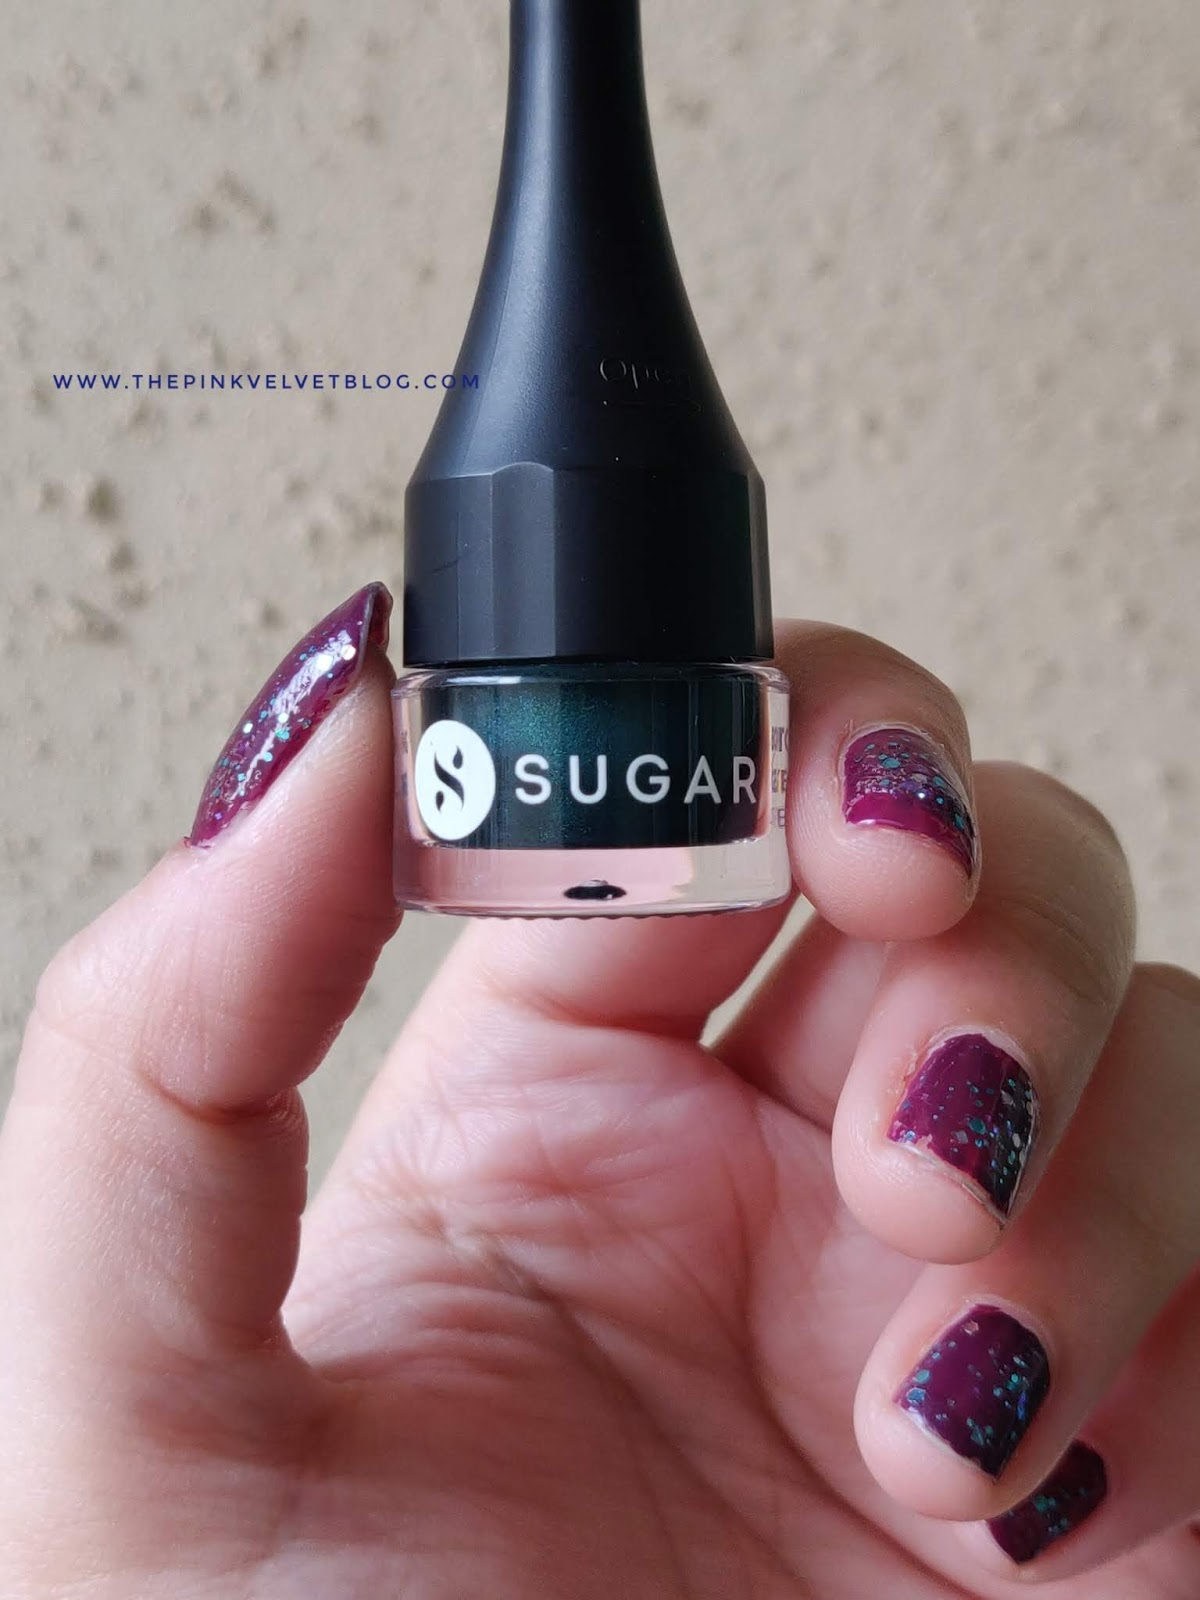 SUGAR Born to Wing Gel Eyeliner - Review and Swatches (All 5 Shades) - Green Eyes